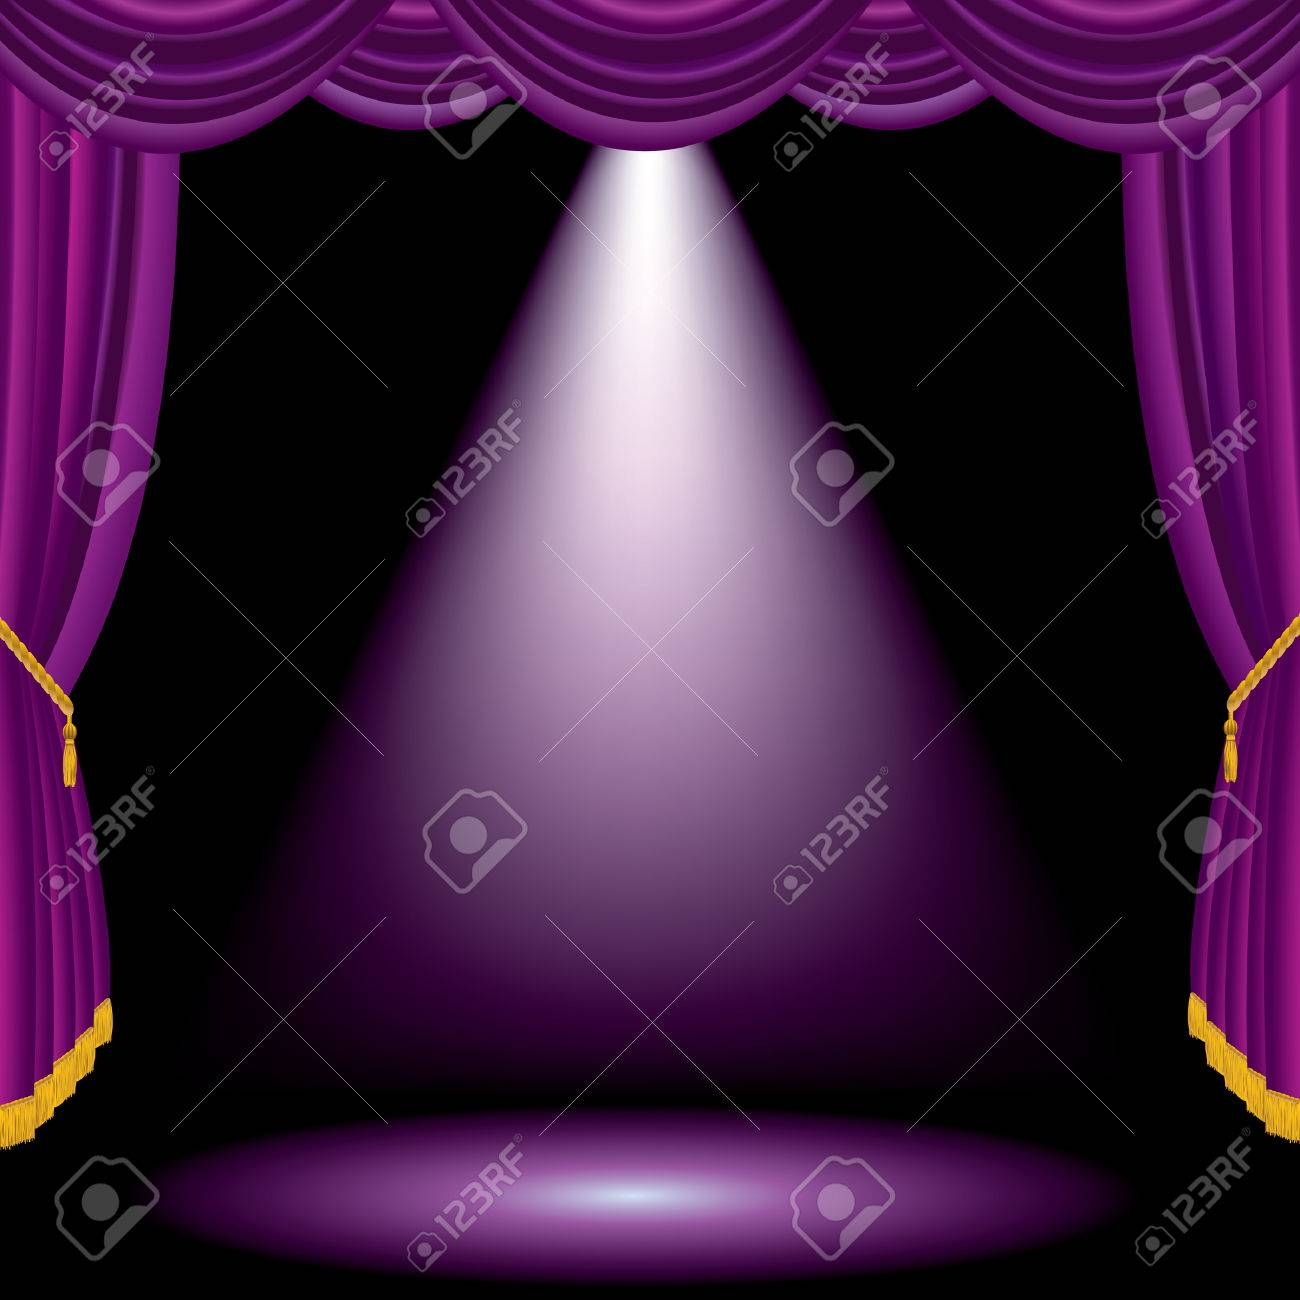 vector purple stage with one spot light - 27531677